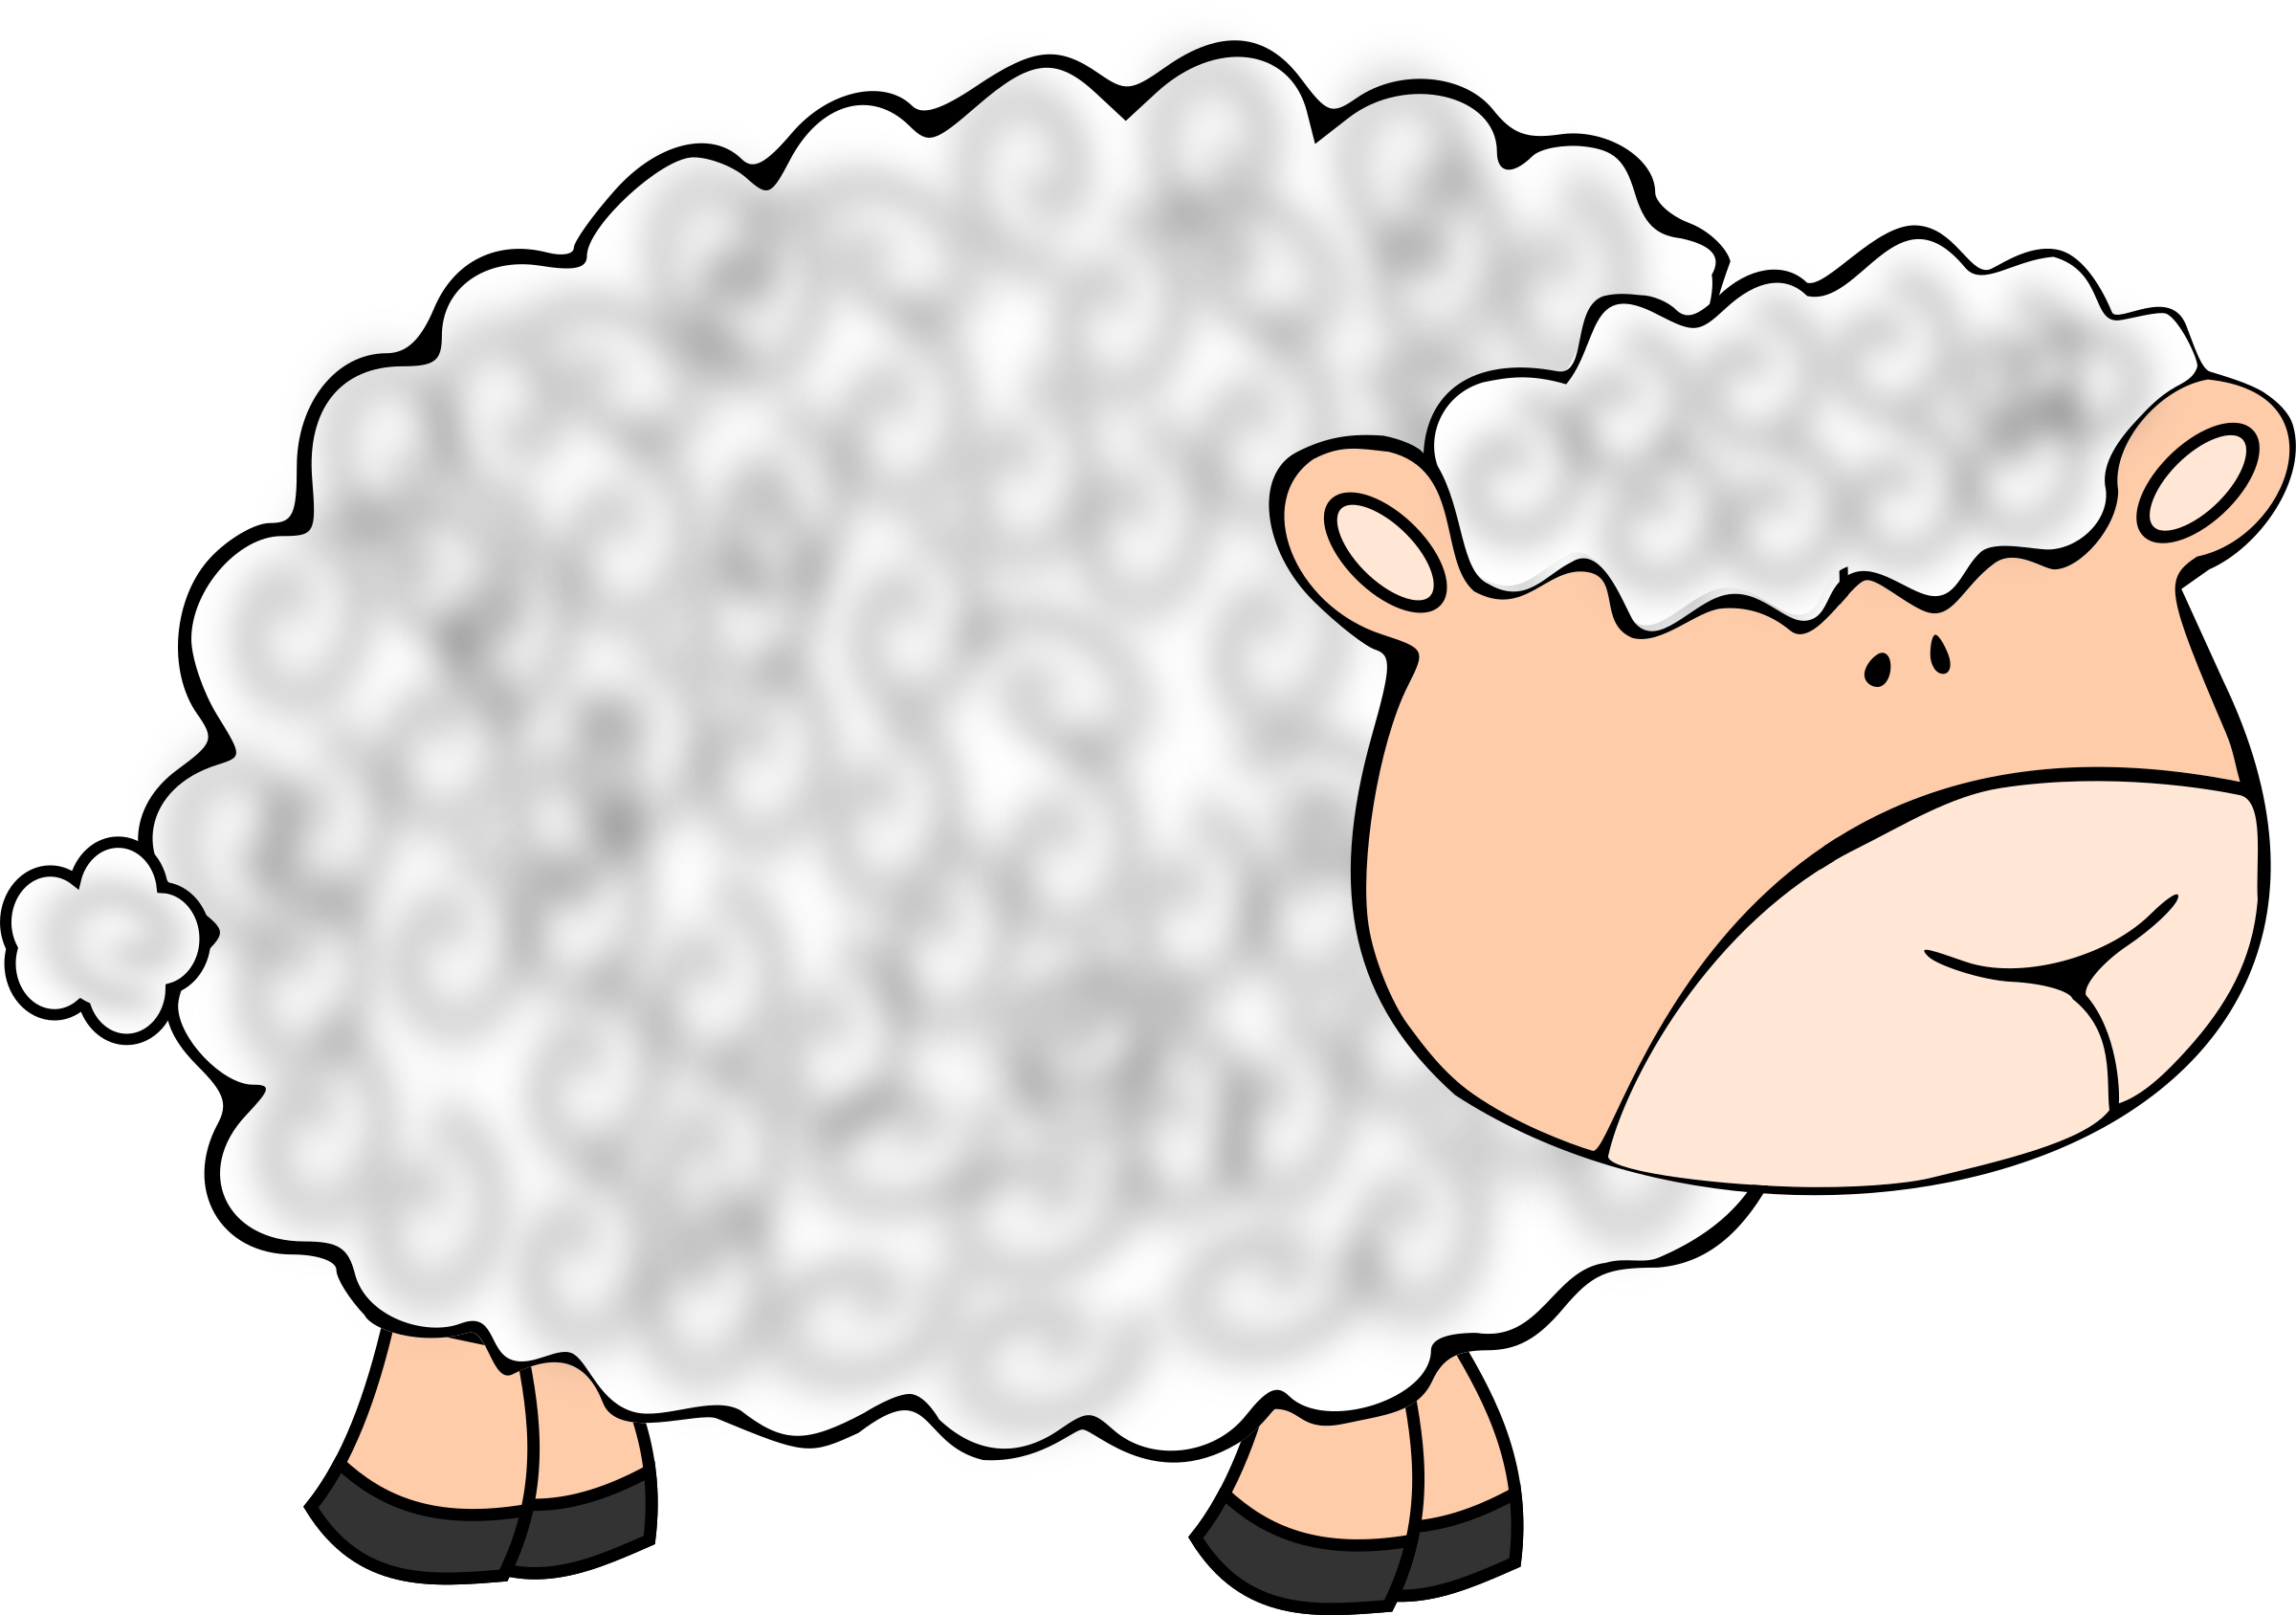 Sheep cartoon png. Funny icons free and